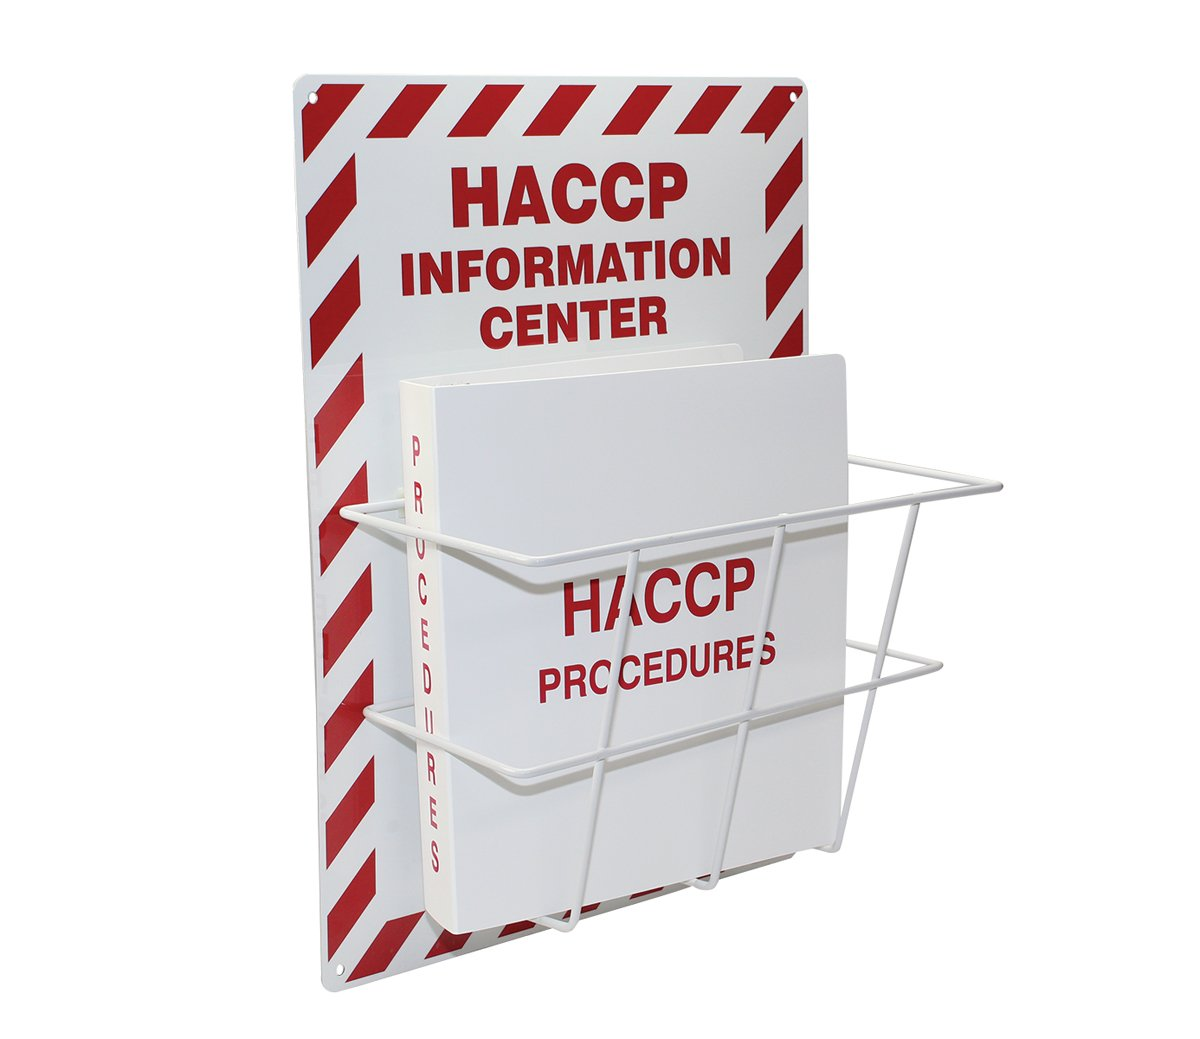 Haccp Information Center 20X14 Kit Sign